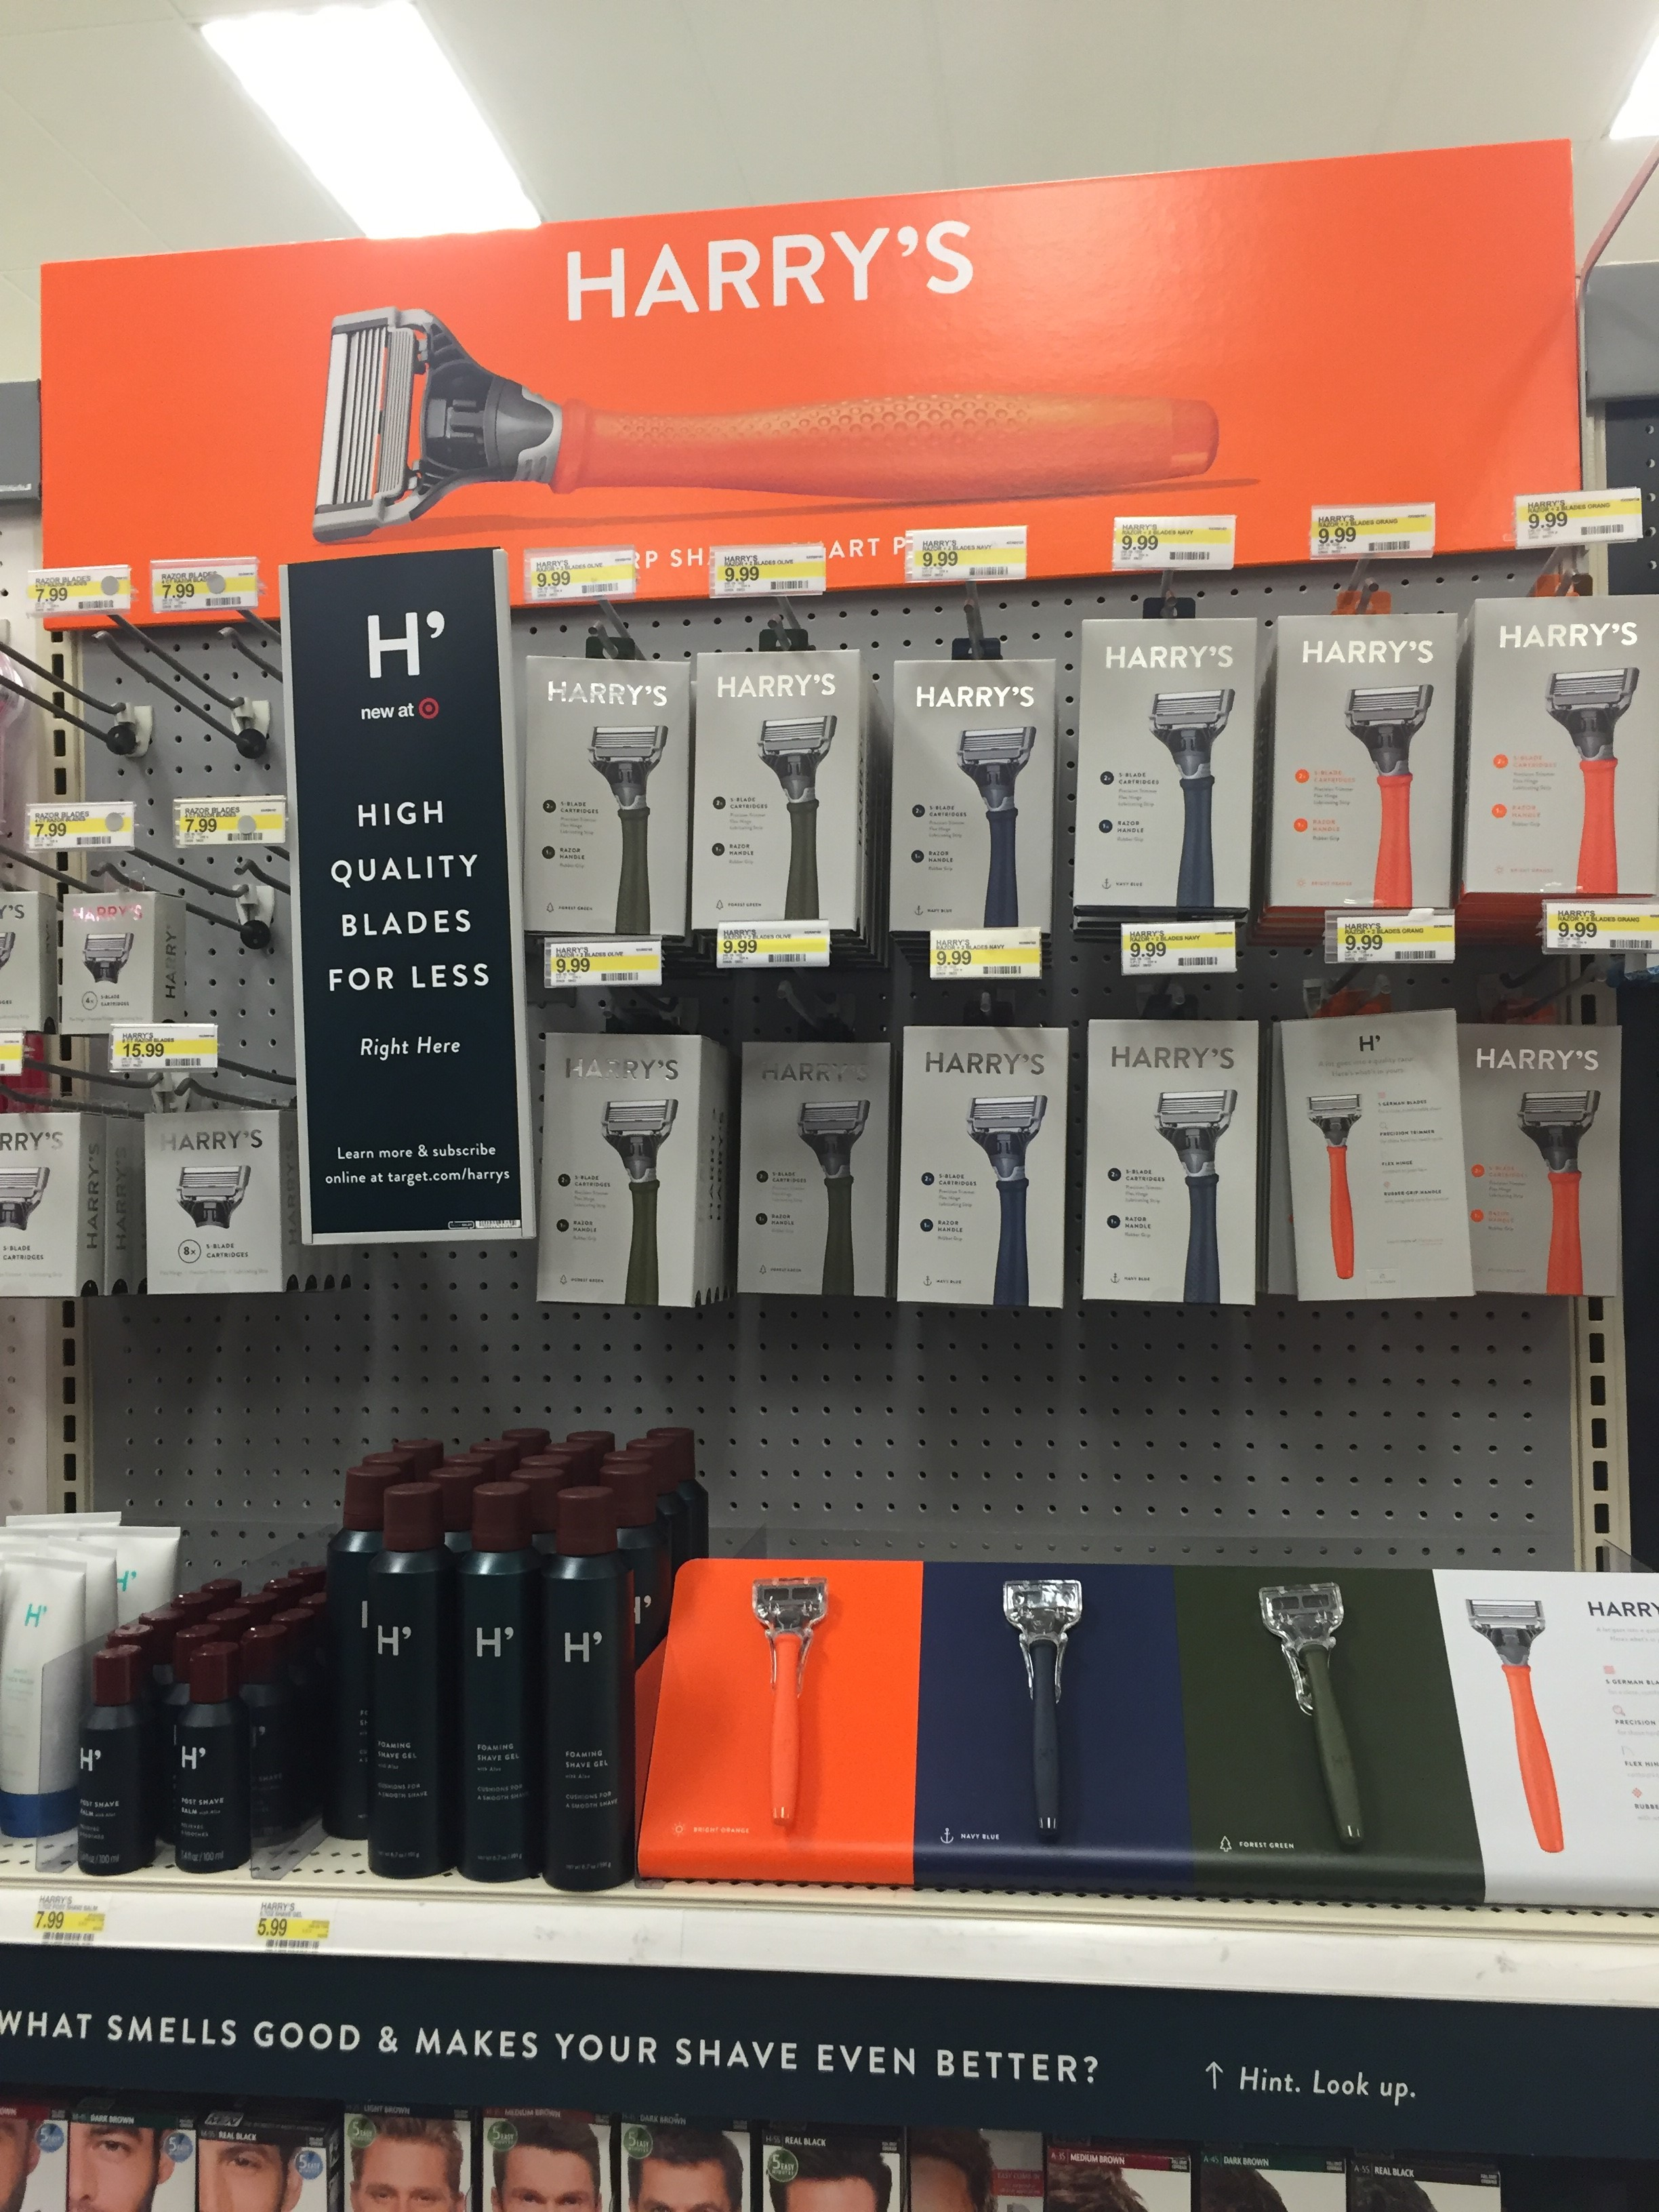 Harry's Occupies about Four Feet of Branded Shelf Space at Target